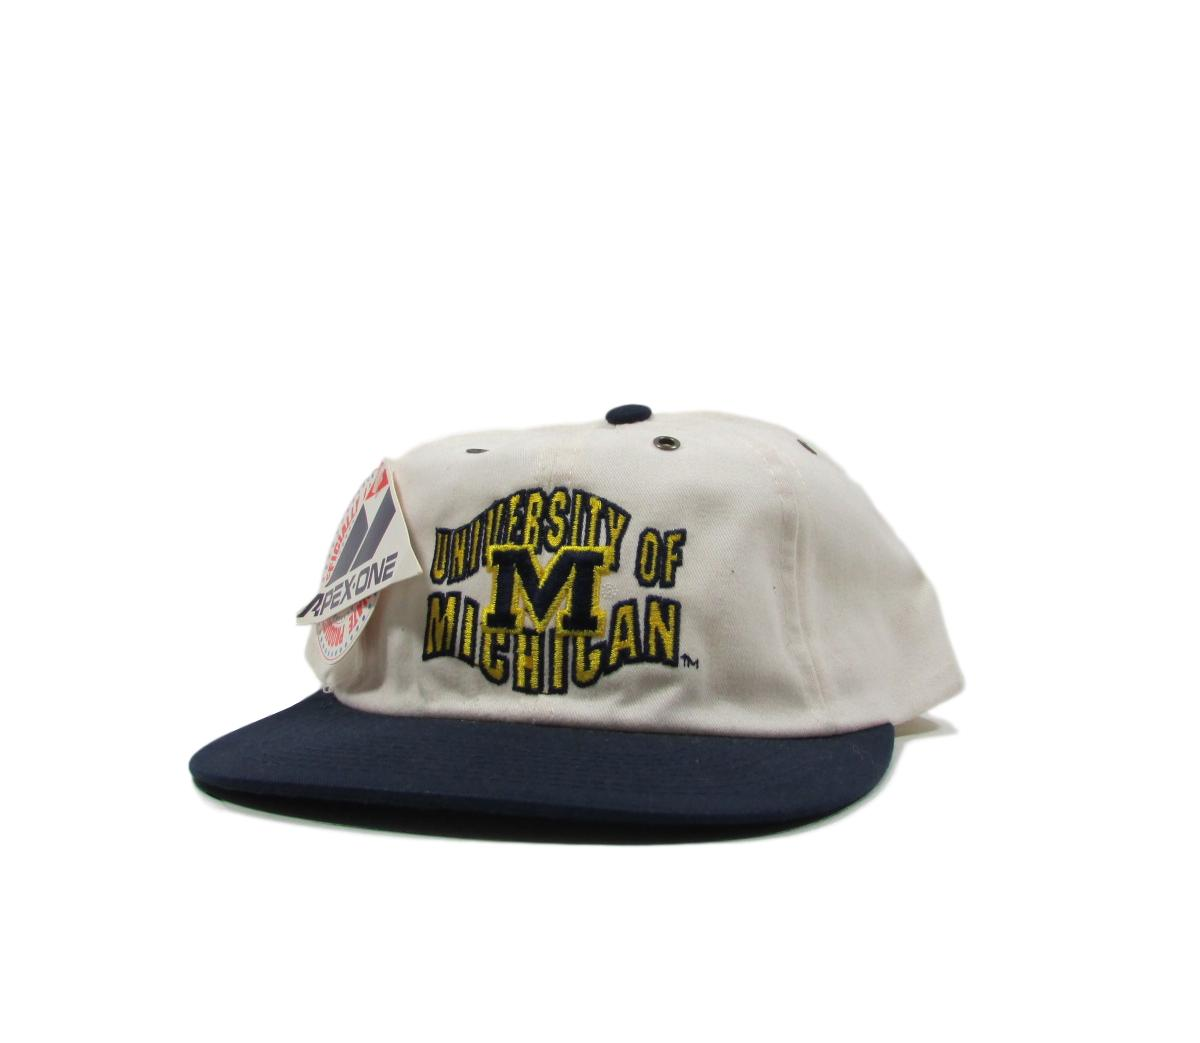 University of Michigan Wolverines Deadstock College Leather Strapback Hat Apex One